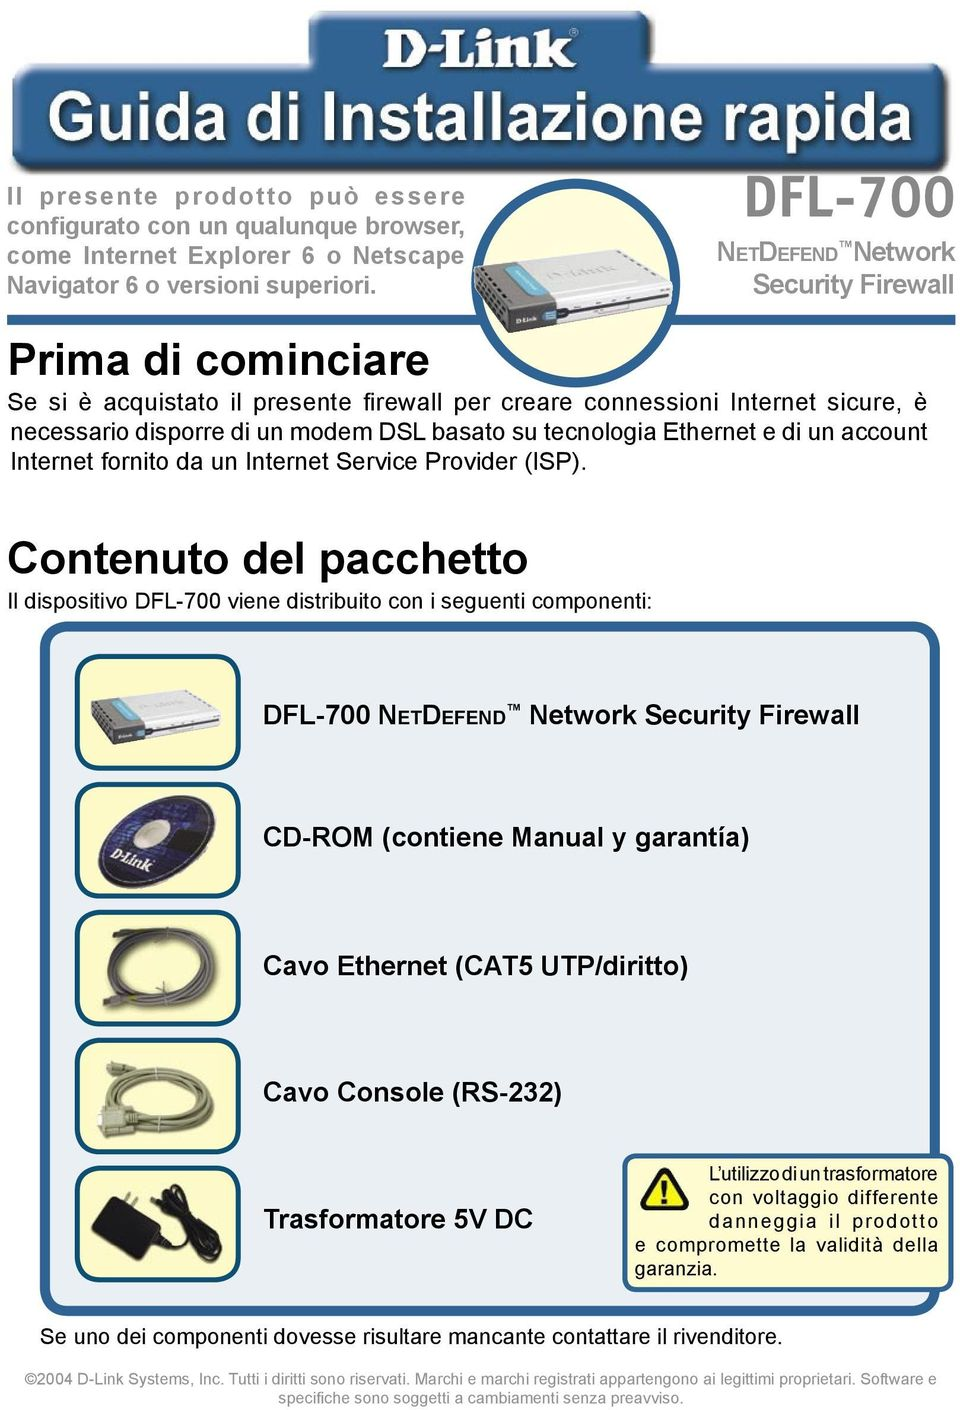 tecnologia Ethernet e di un account Internet fornito da un Internet Service Provider (ISP).